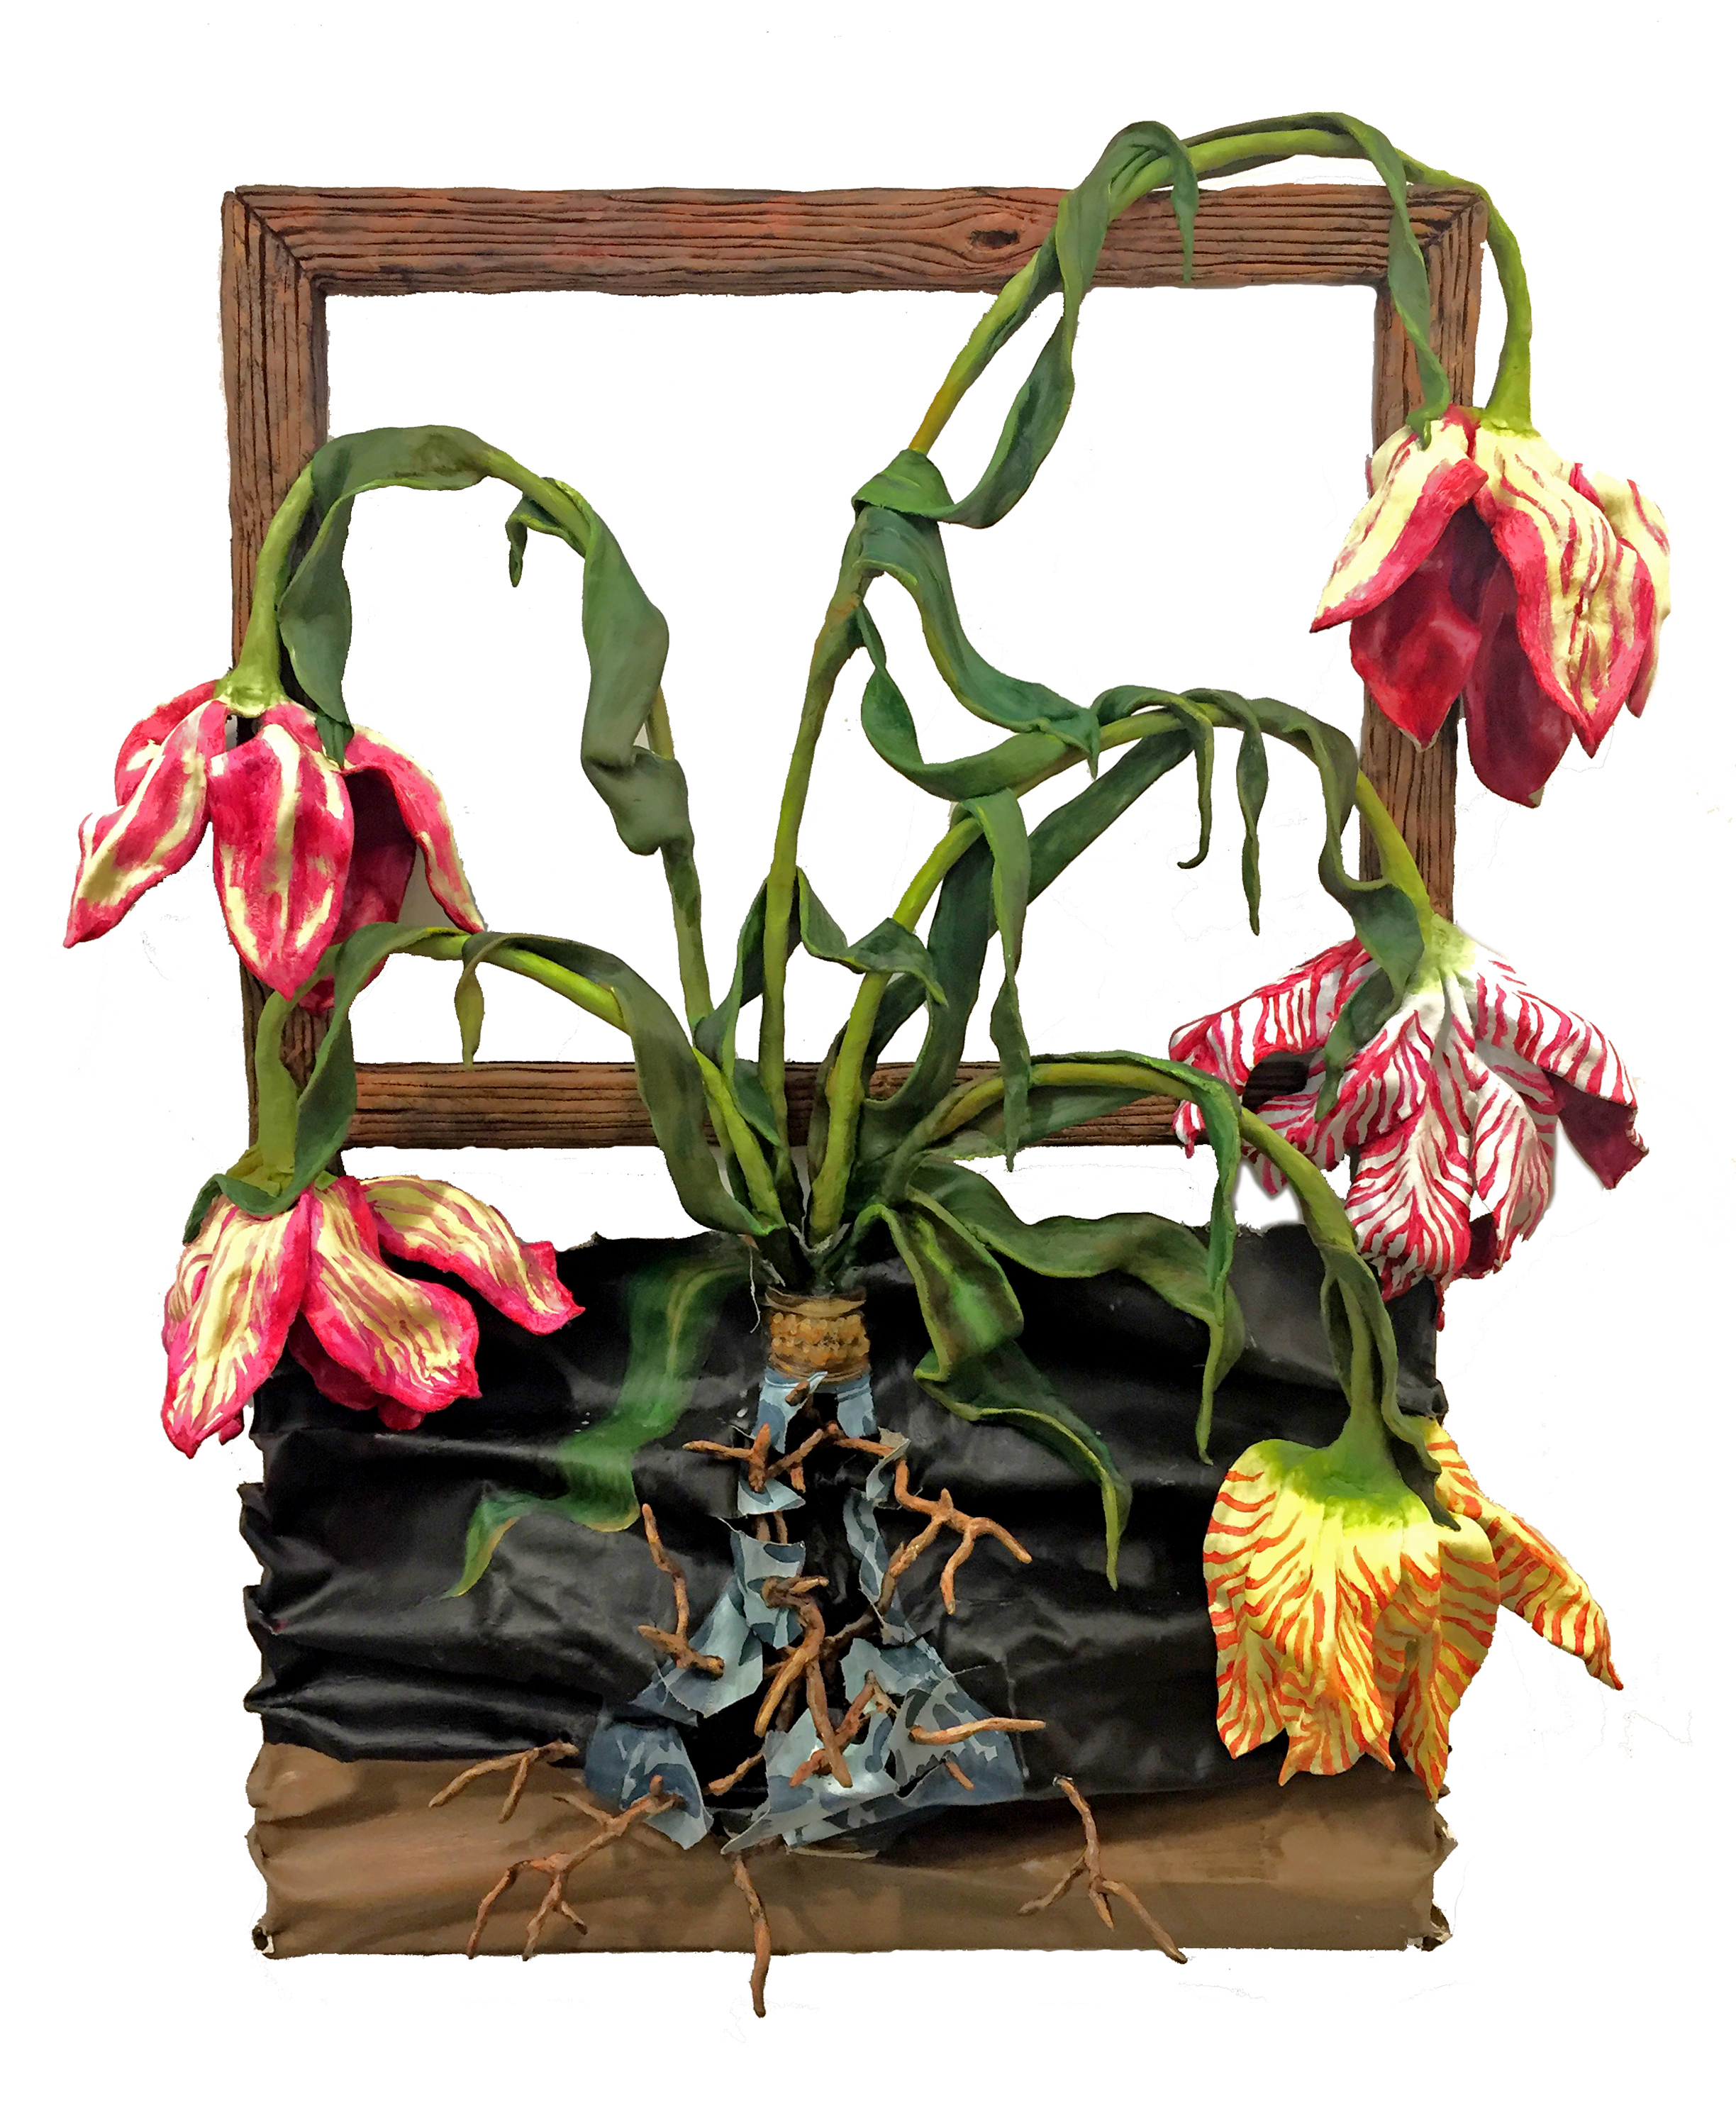 Valerie Hegarty, 5 Tulips with Wan Li Vase Elegy, 2019, wood, canvas, wire, foil, epoxy clay, acrylic paint, 40 x 33 x 9 in (101.6 x 83.8 x 22.9 cm)